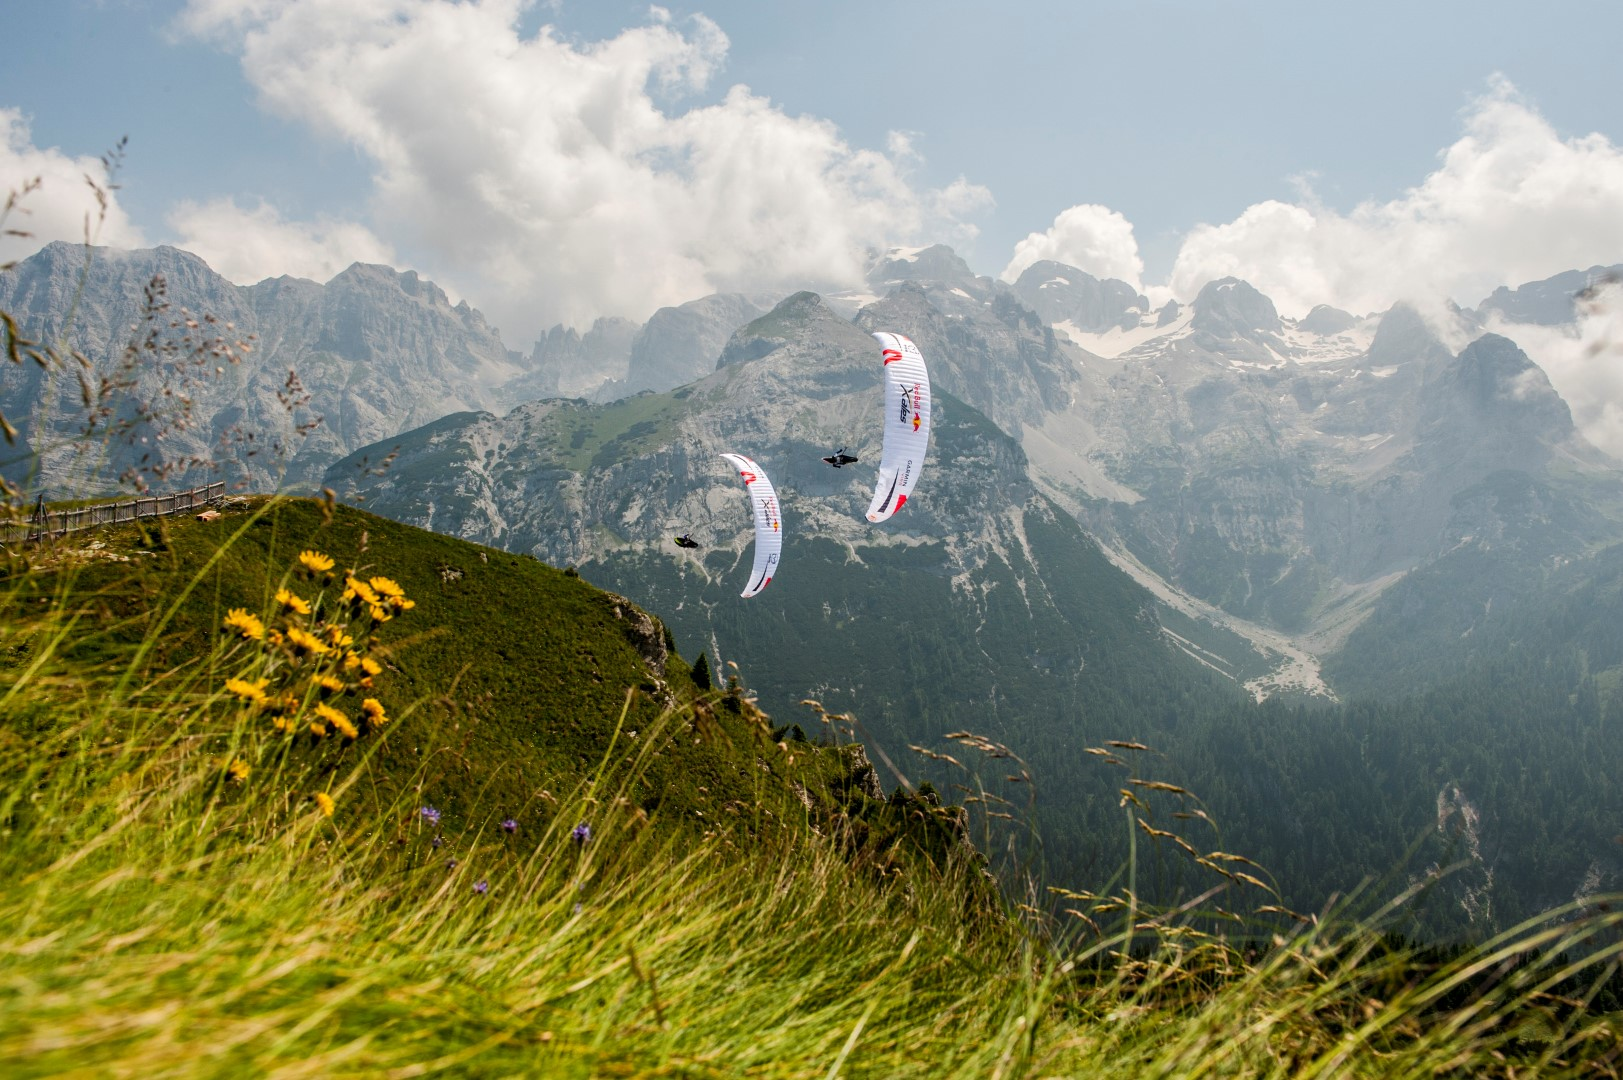 Participants perform during the Red Bull X-Alps at Brenta, Italy on July 7th 2015